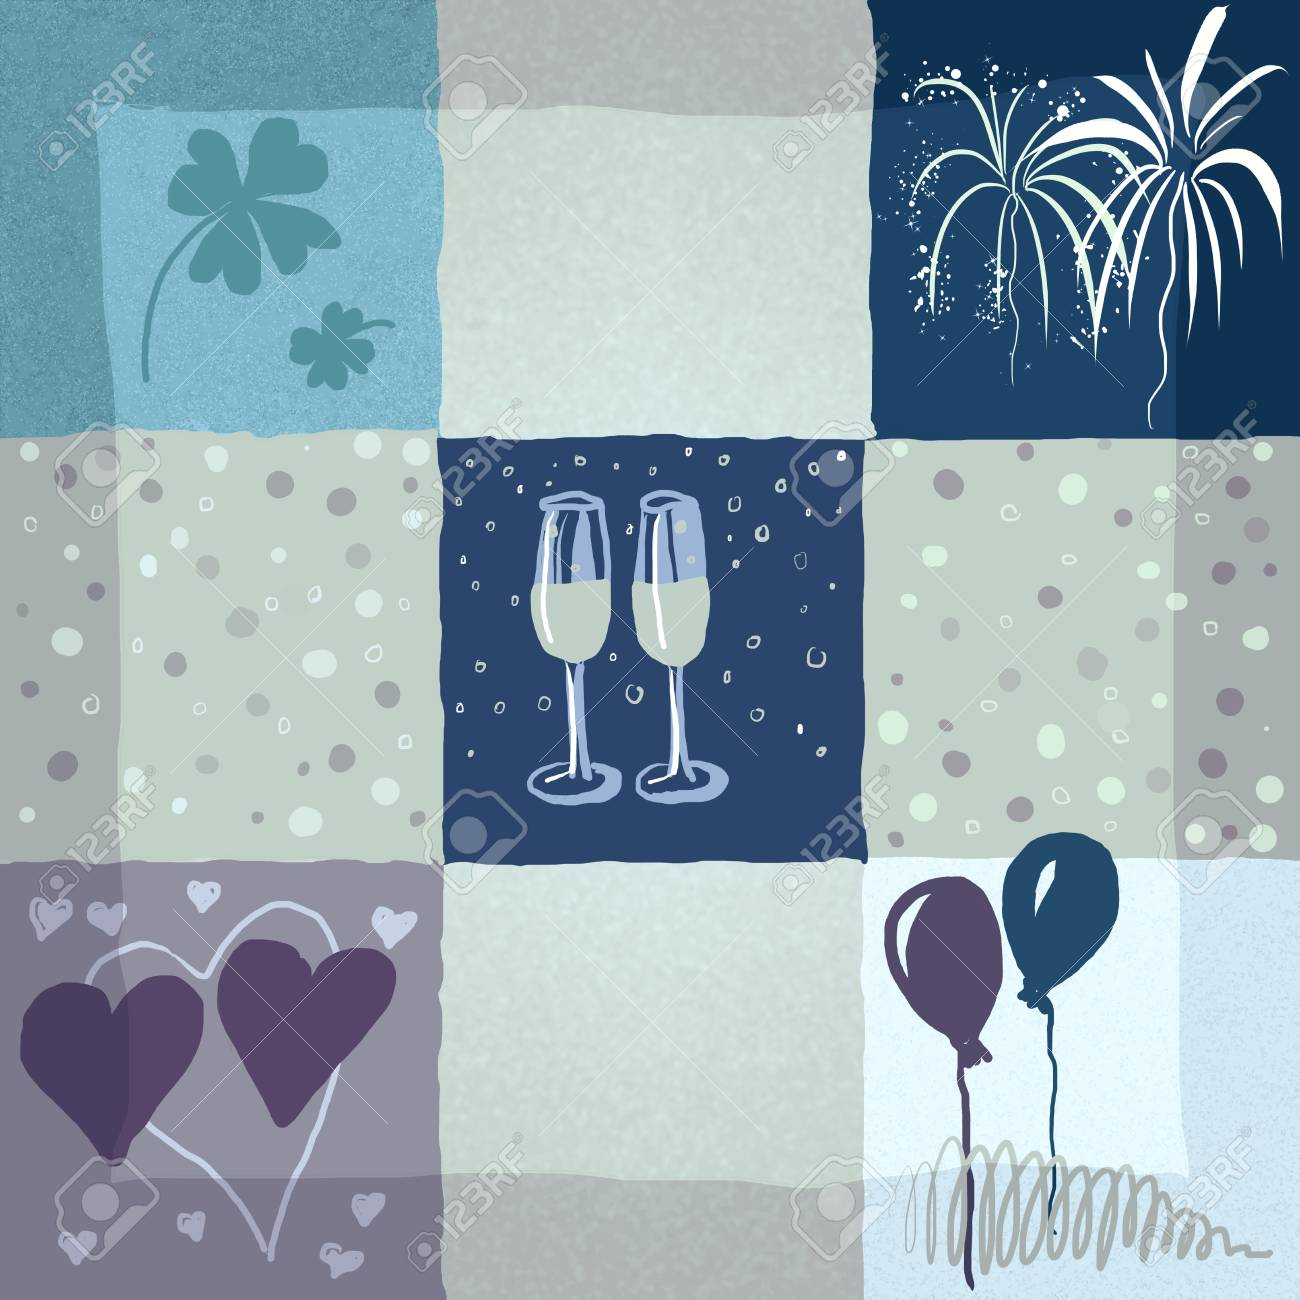 Illustration Of Symbols For Special Events Like Birthday Marriage